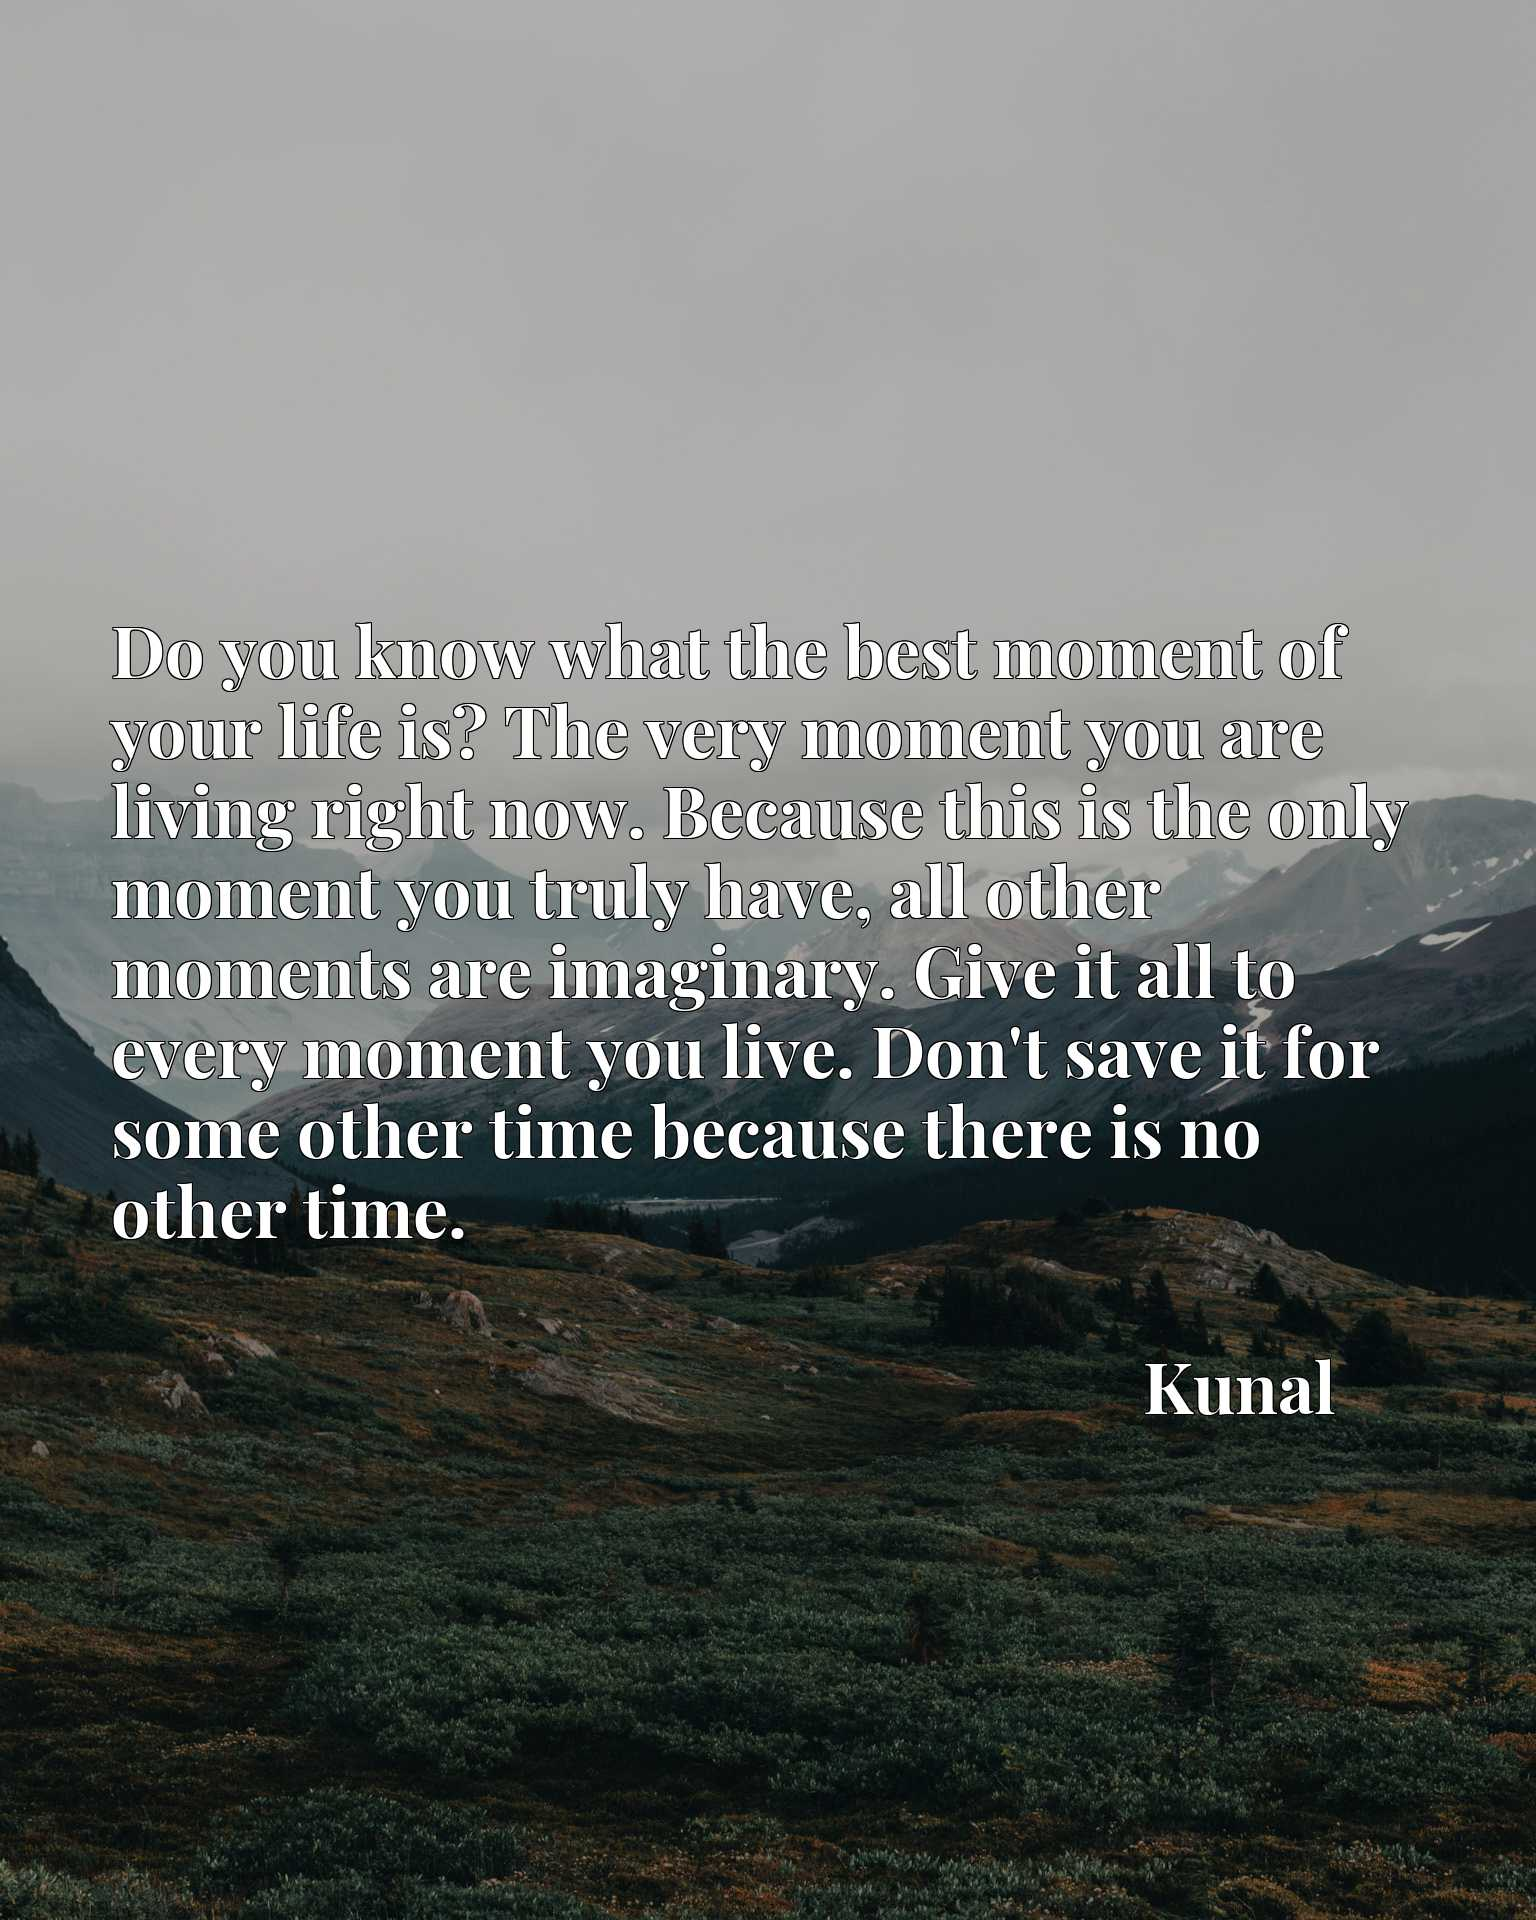 Do you know what the best moment of your life is? The very moment you are living right now. Because this is the only moment you truly have, all other moments are imaginary. Give it all to every moment you live. Don't save it for some other time because there is no other time.